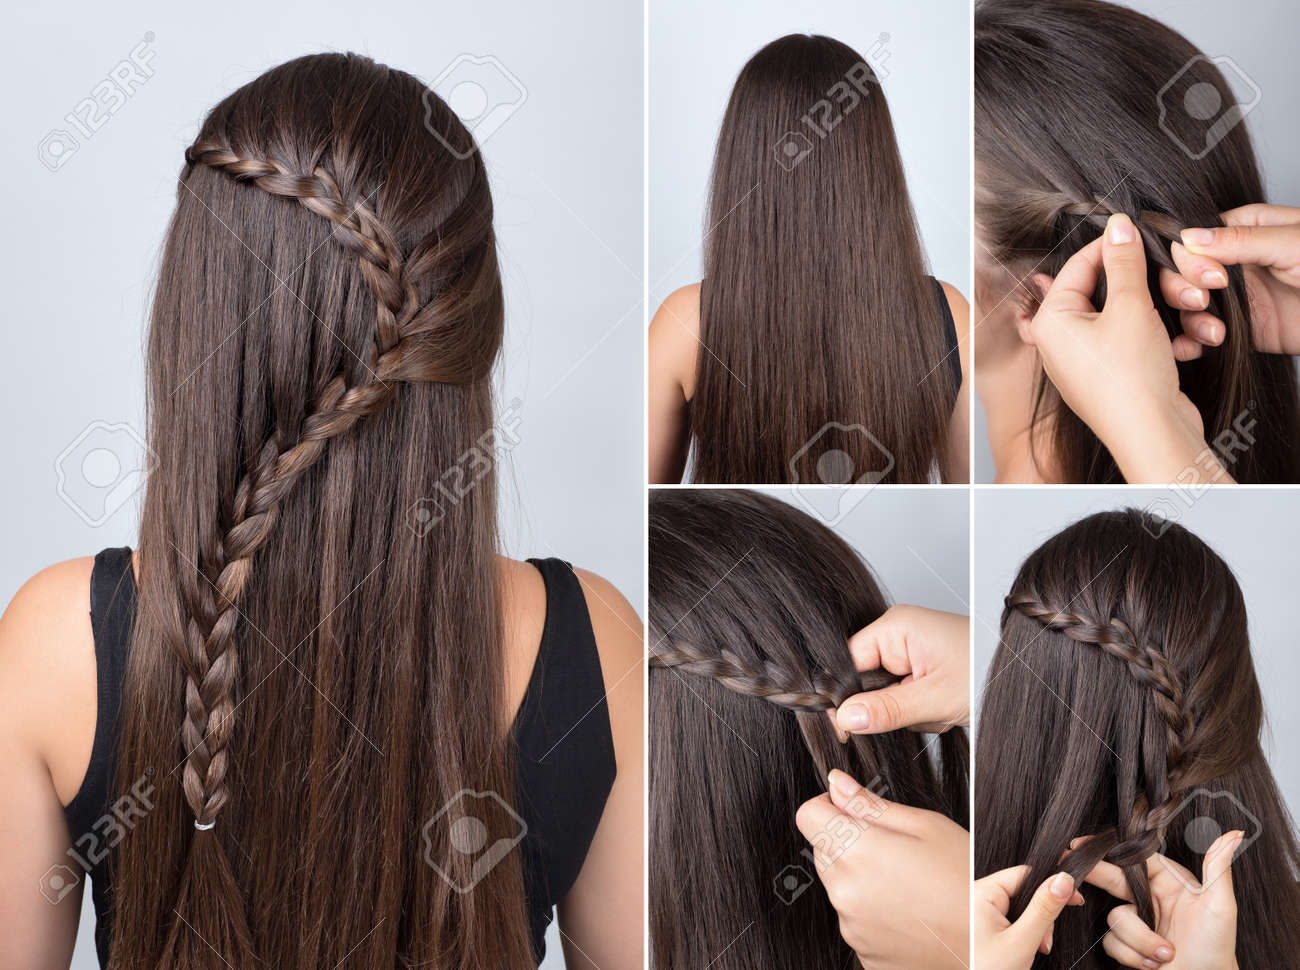 Hairdo Cascade Braid, Hair Tutorial. Hairstyle For Long Hair ...